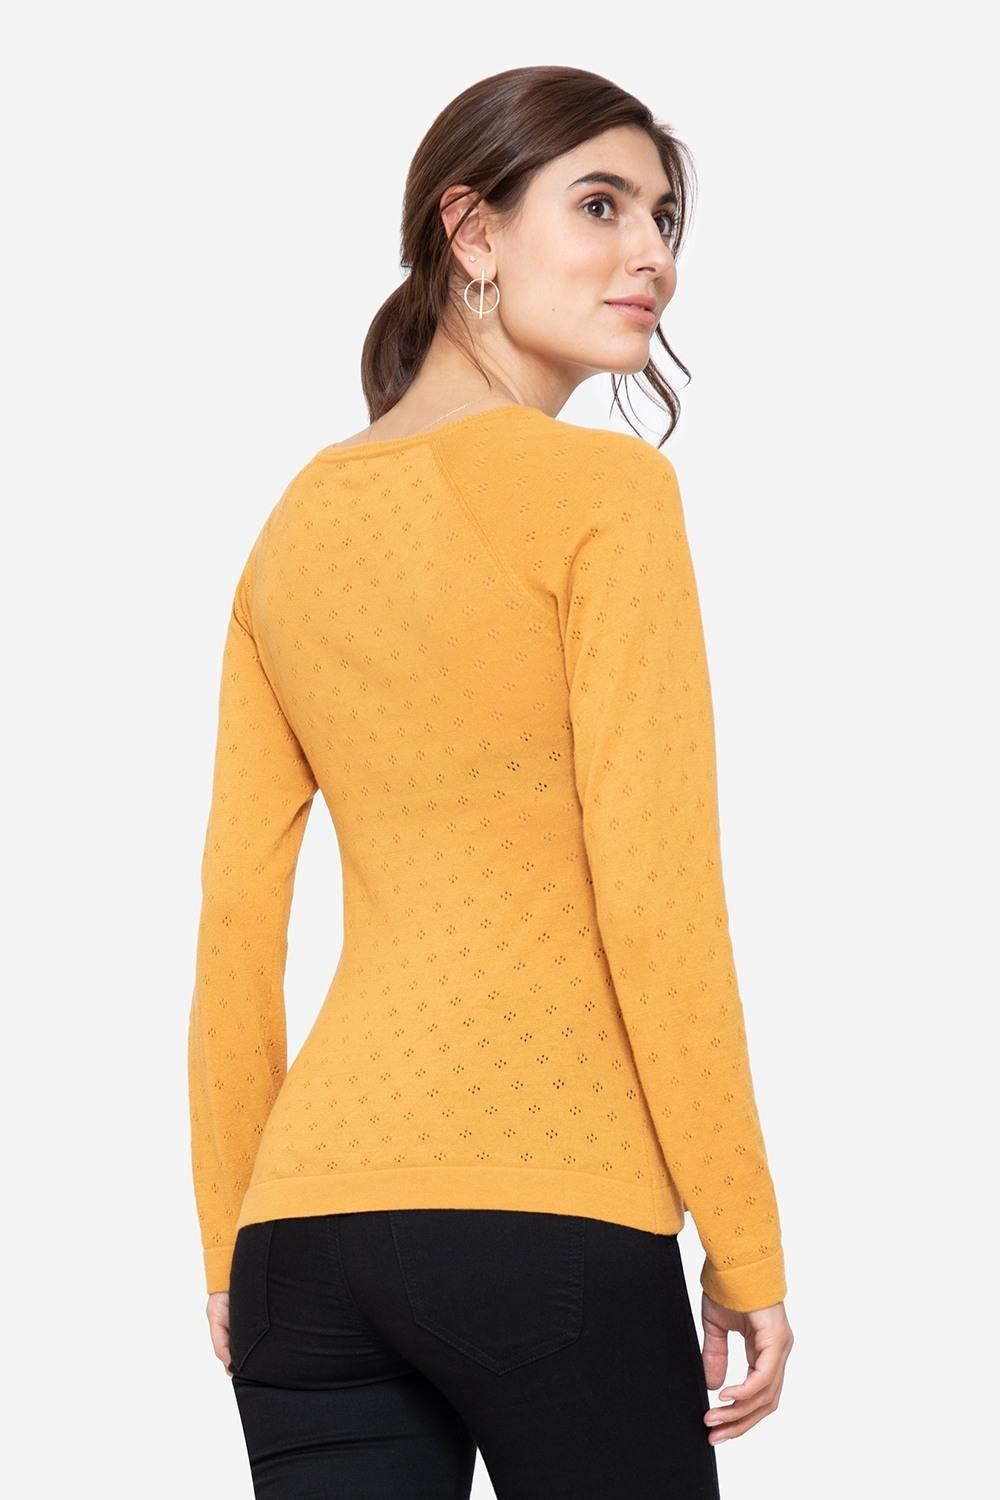 Yellow V-neck nursing jumper in organic cotton, seen from behind